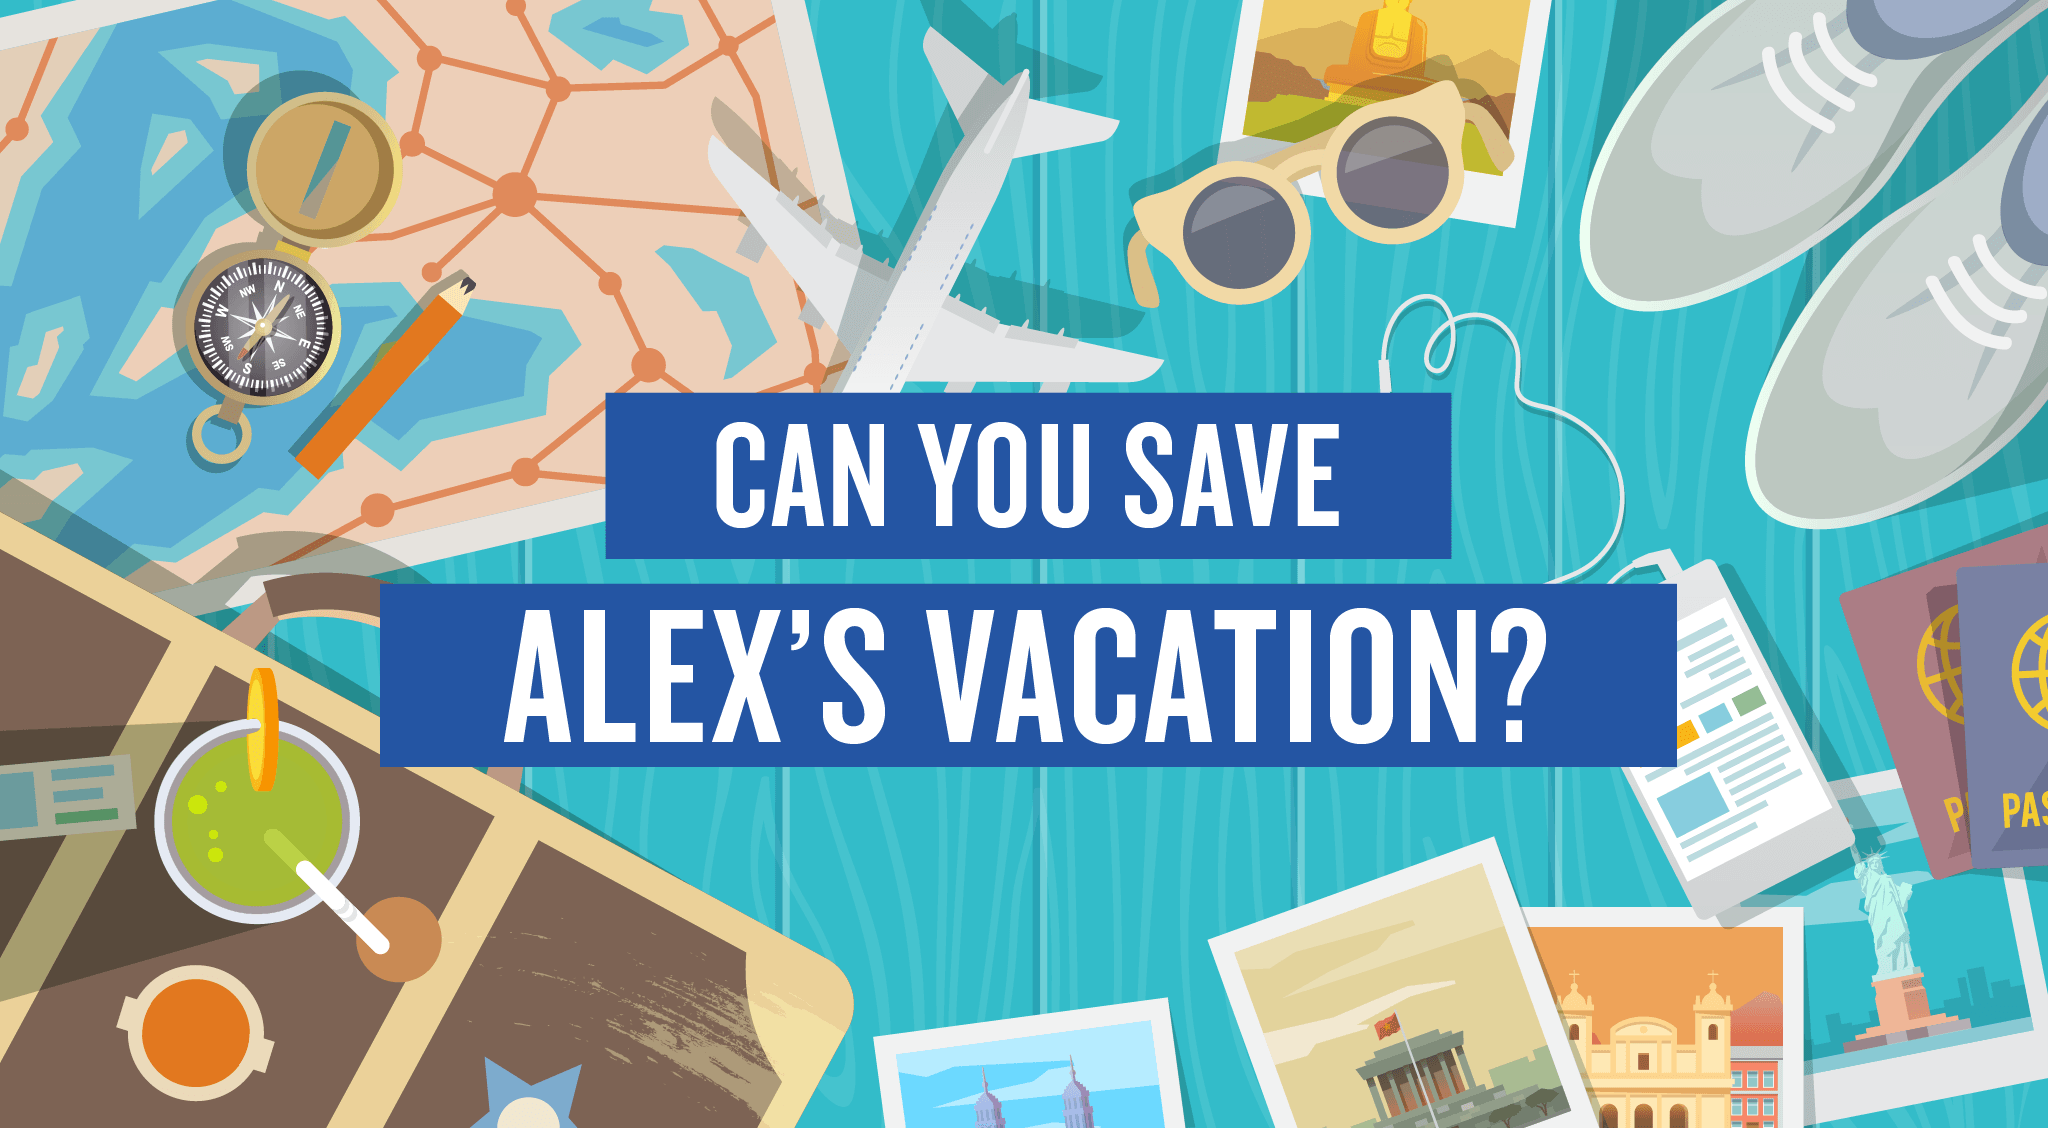 Save Alex's Vacation